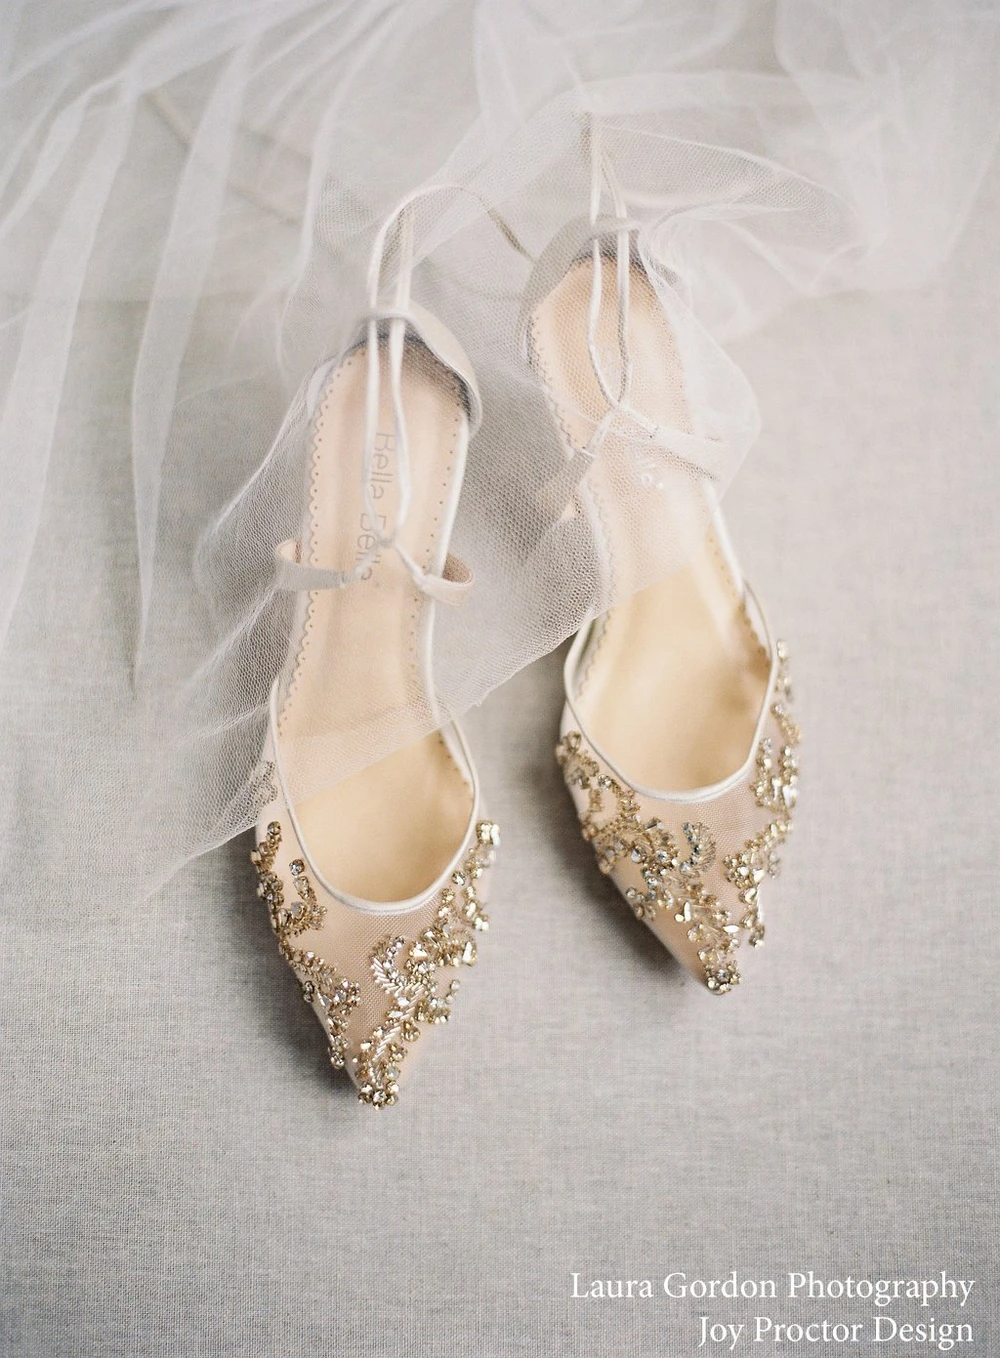 Champagne Gold Wedding Shoes Low Heel In 2021 Wedding Shoes Heels Kitten Heel Wedding Shoes Gold Wedding Shoes